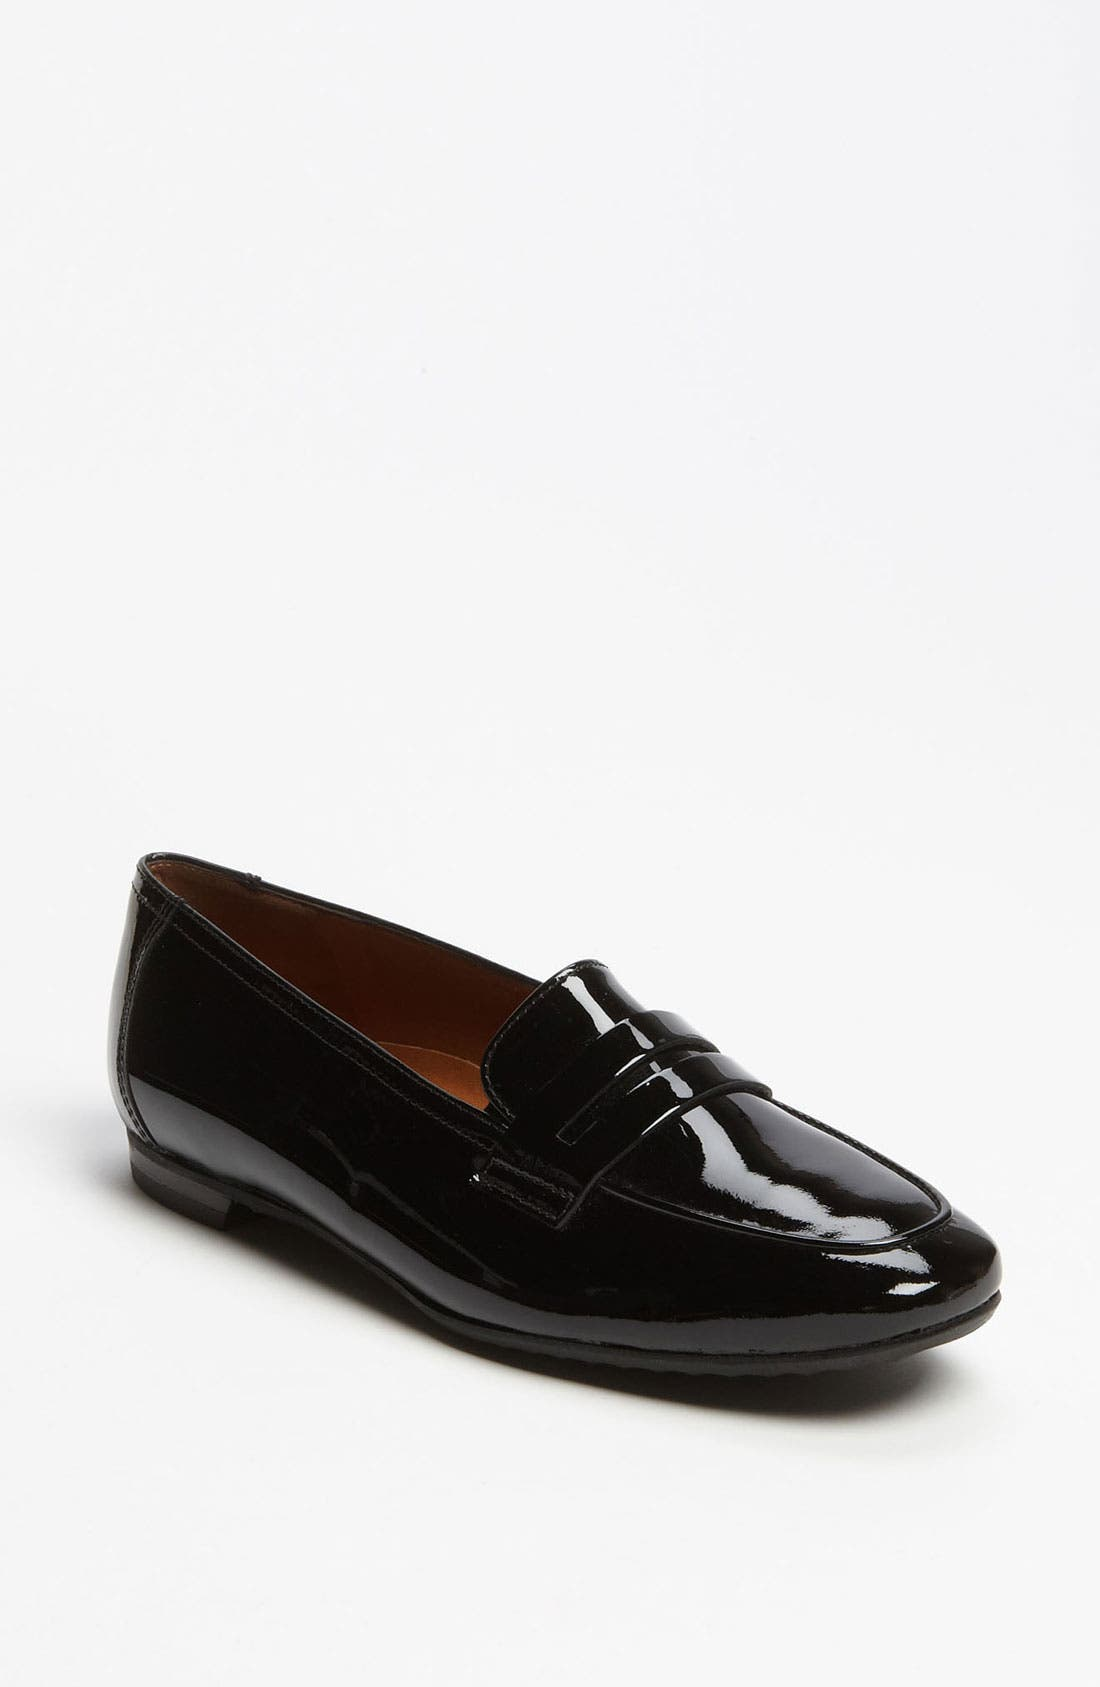 Main Image - Paul Green 'Nicky' Loafer